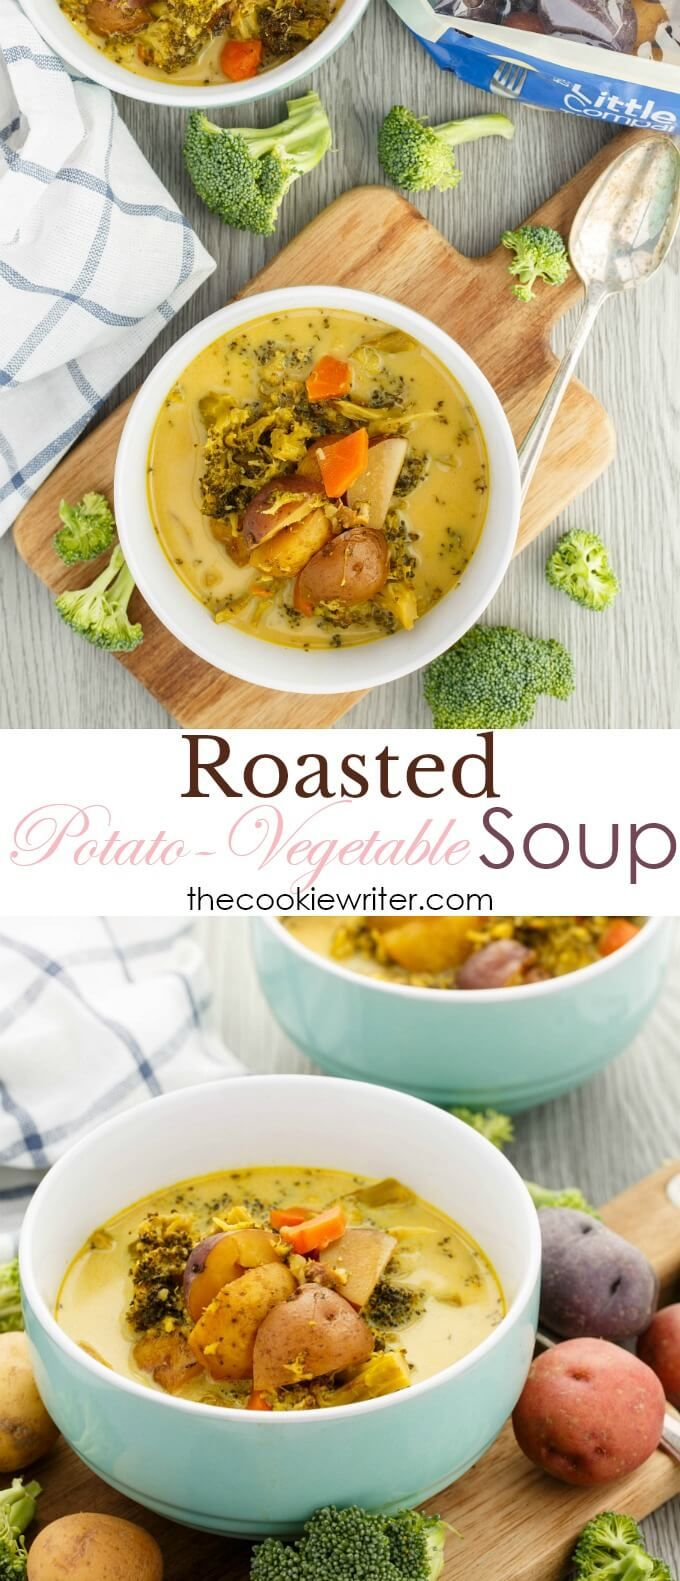 Roasted Potato-Vegetable Soup | #sponsored #soup #vegan #glutenfree #vegetarian #littlepotatoes #comfortfood #healthyfood | An array of delicious veggies like little potatoes and broccoli make this comfort soup come together! While the recipe does call for cream, you can easily omit it to make the recipe vegan! Other non-dairy milks would work perfectly! Simple, almost one pot, and mighty delicious!